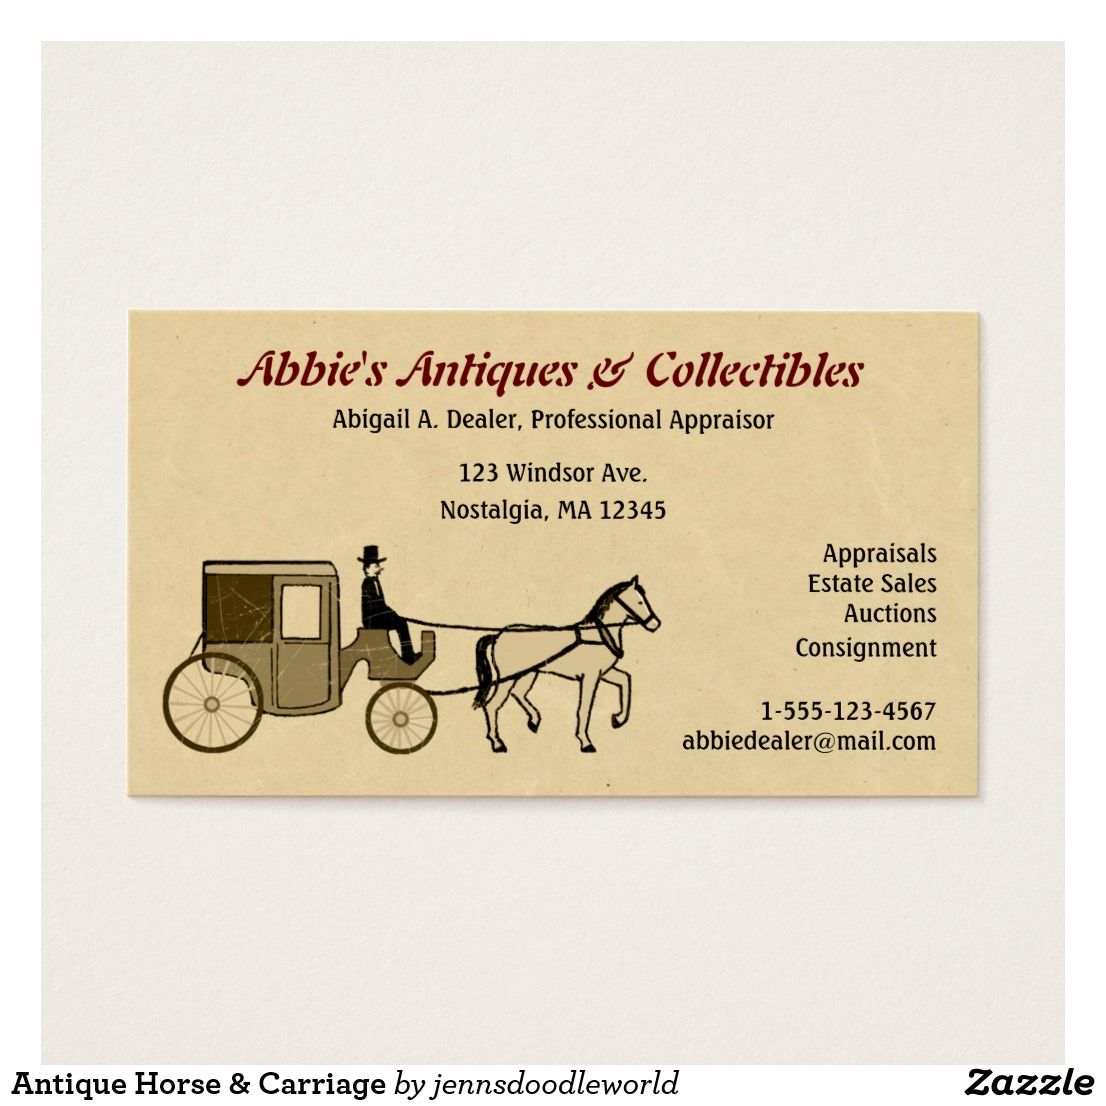 Antique Horse & Carriage Business Card   Pinterest   Business cards ...